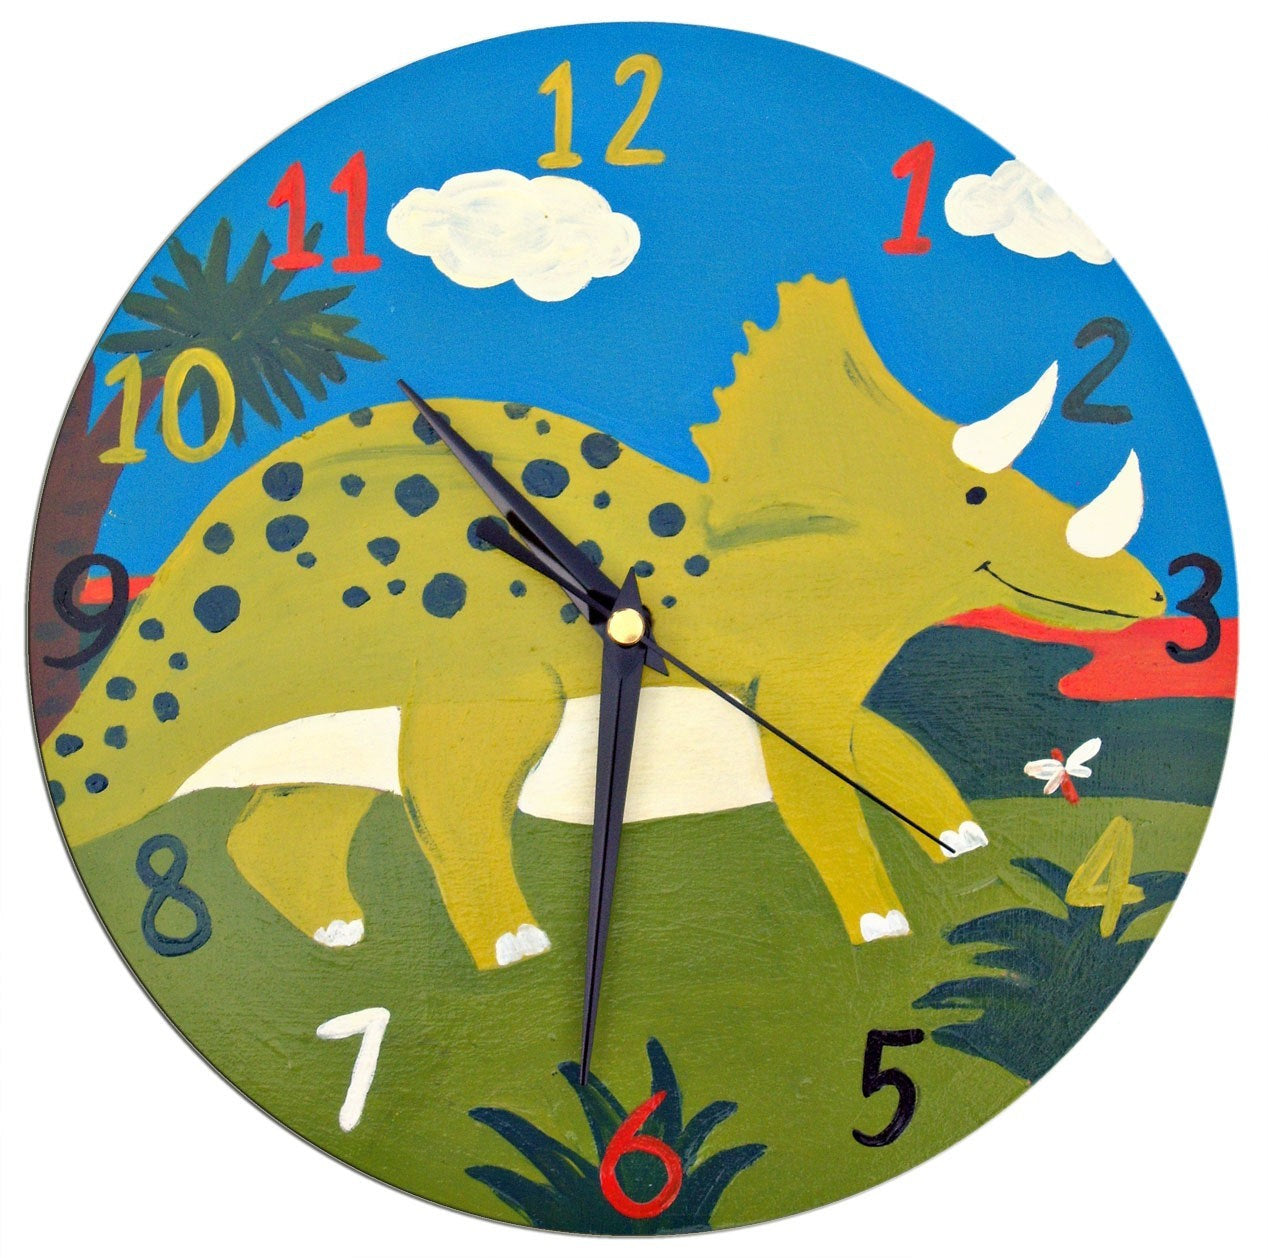 Dinosaur Clock, Kids Clock, Boys Bedroom Decor, Wall Decor, Dinosaur Decor, Gift for Boys